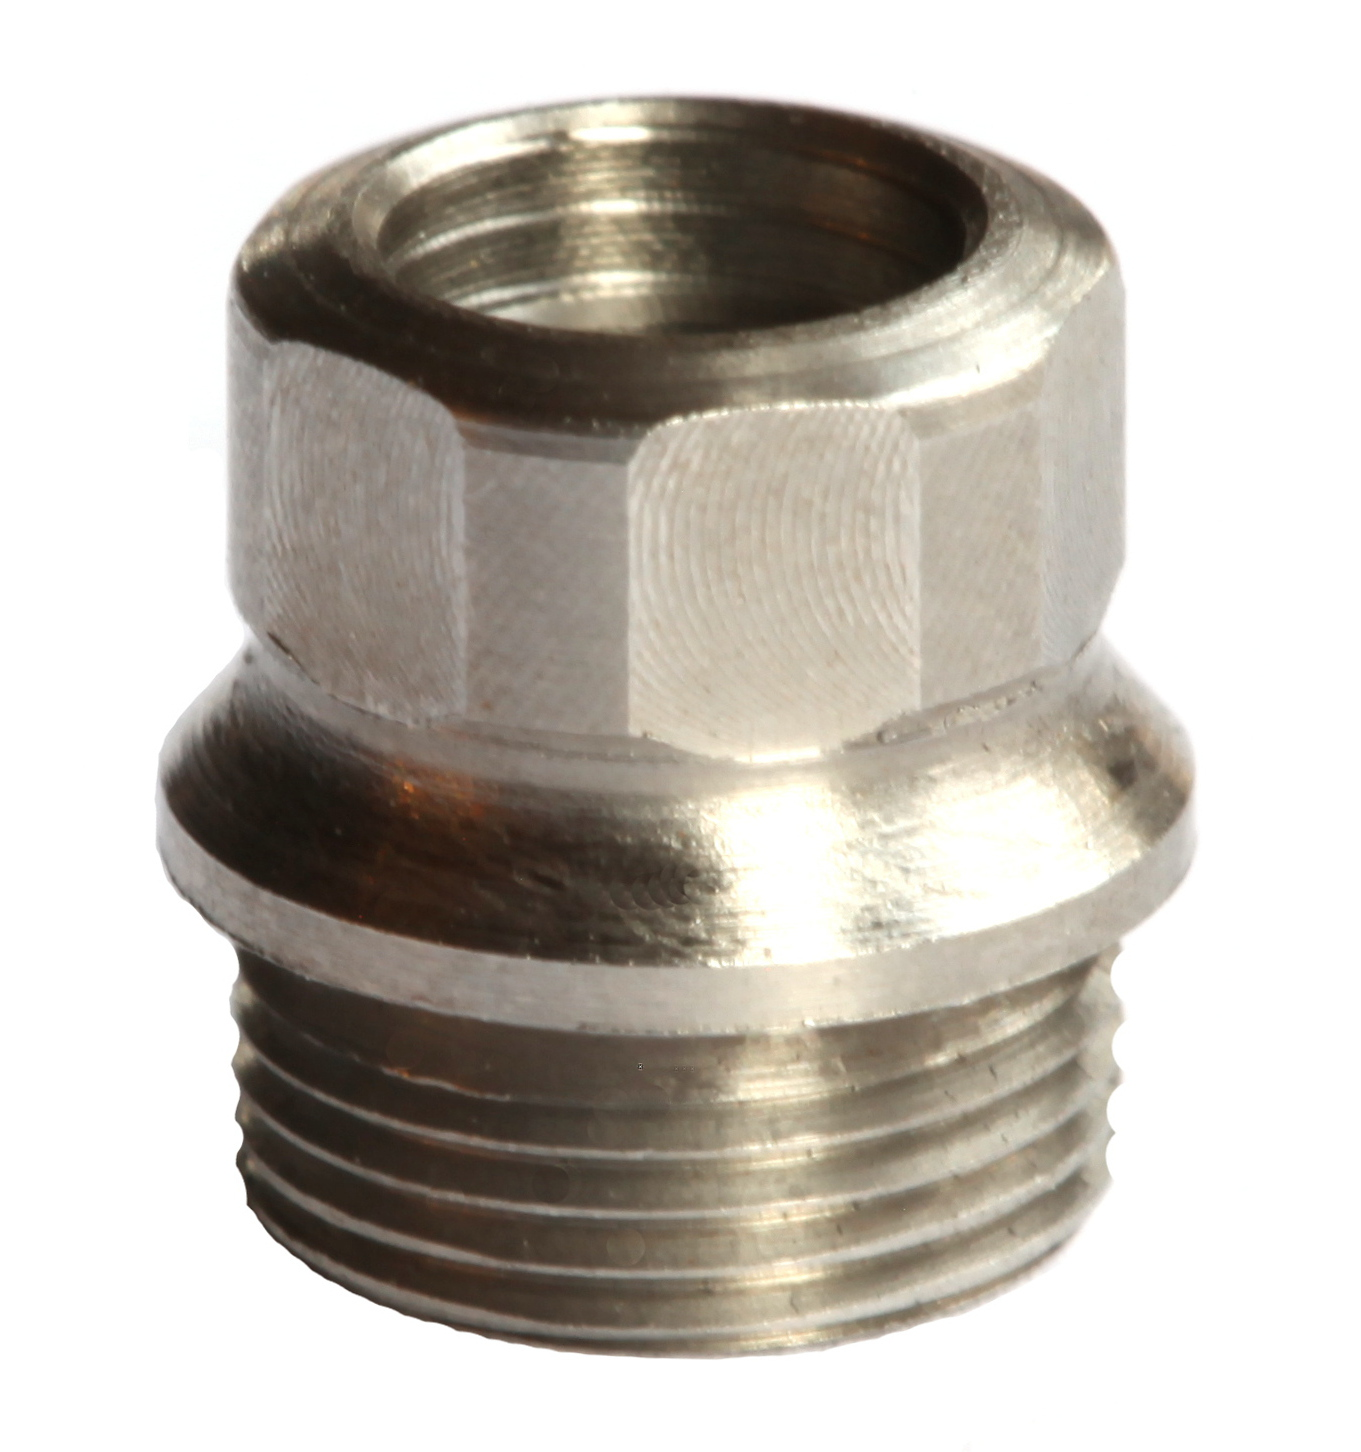 Hex drive bushing full size stainless pieces b fss